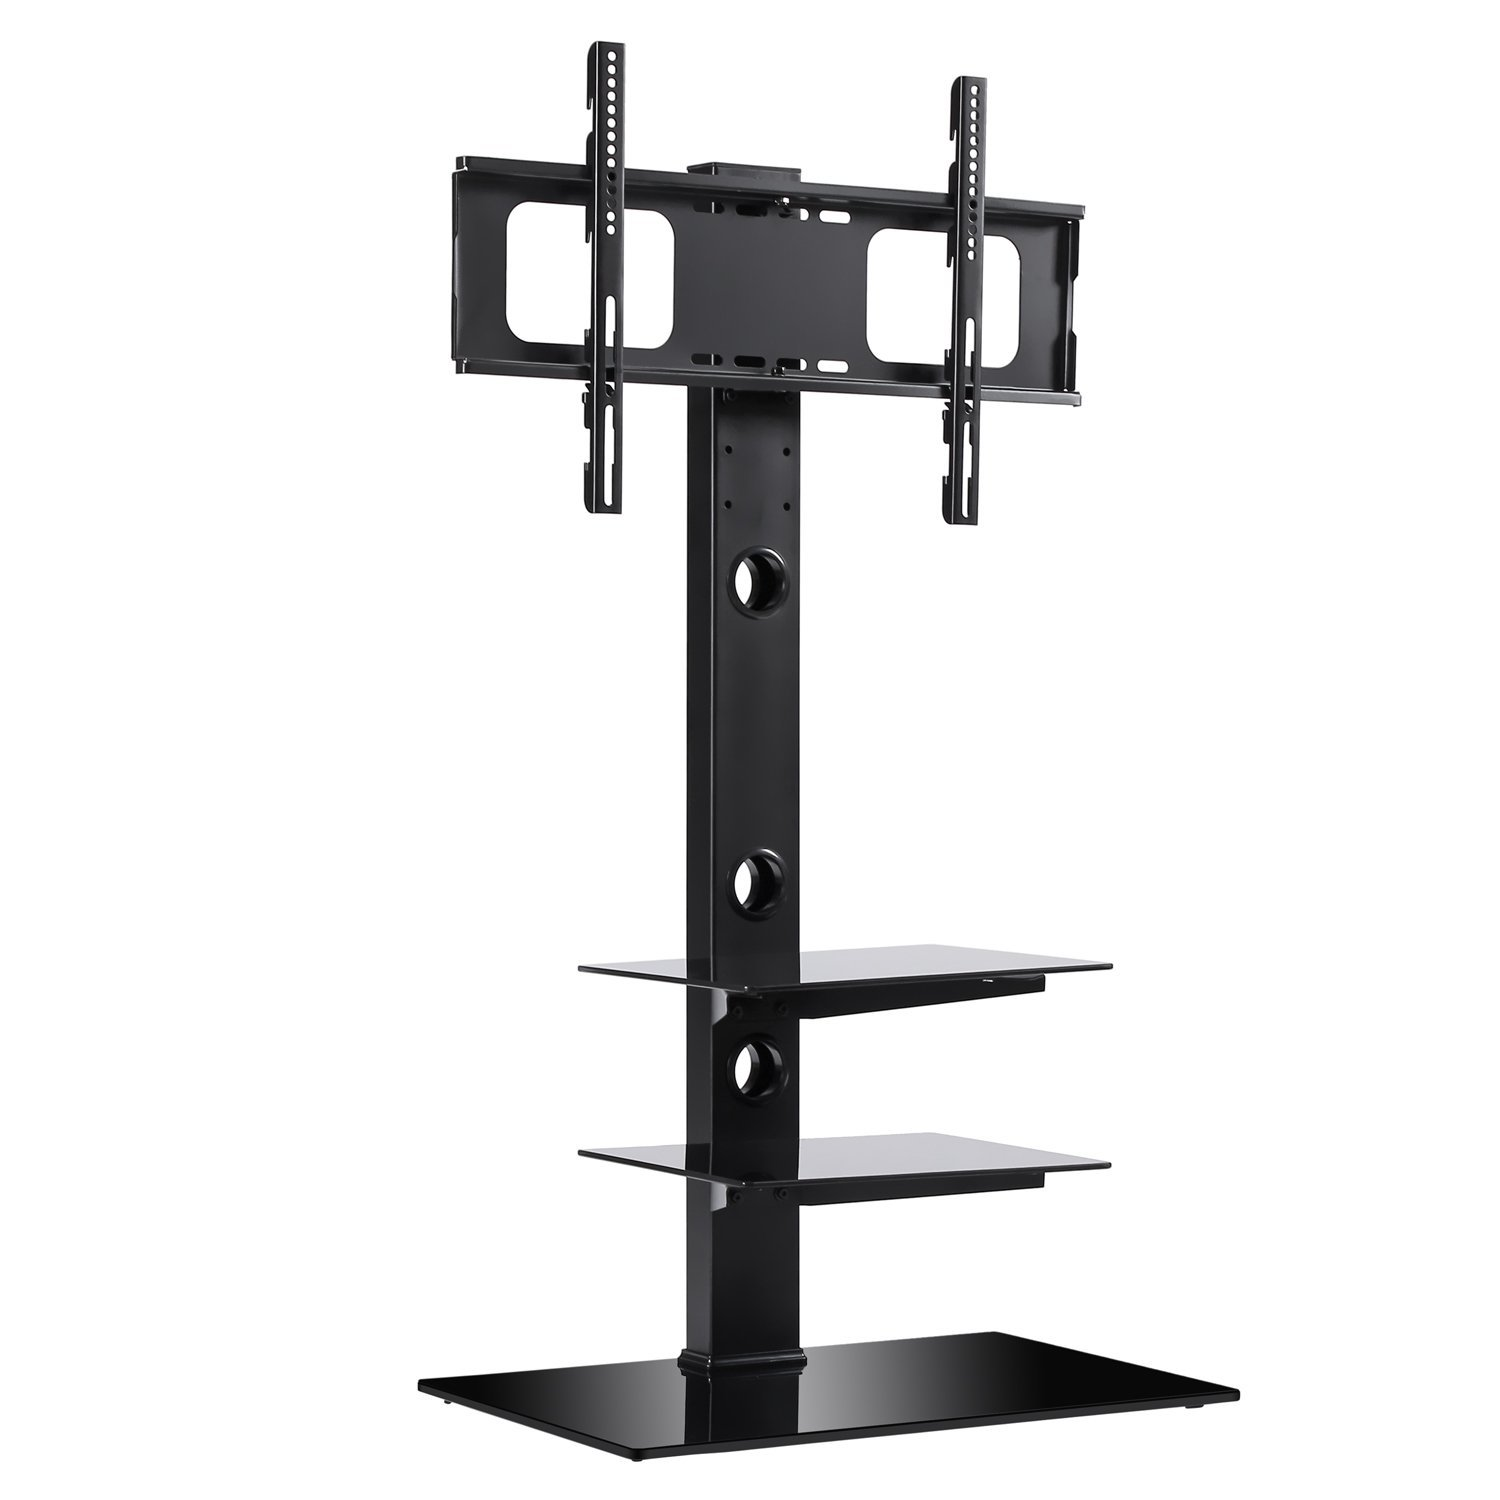 RFIVER Black Floor TV Stand with Universal Swivel Bracket Mount for 32 to 65 inch Flat/Curved Screen TV, Adjustable Height and Three Tempered Glass Shelves TF2002